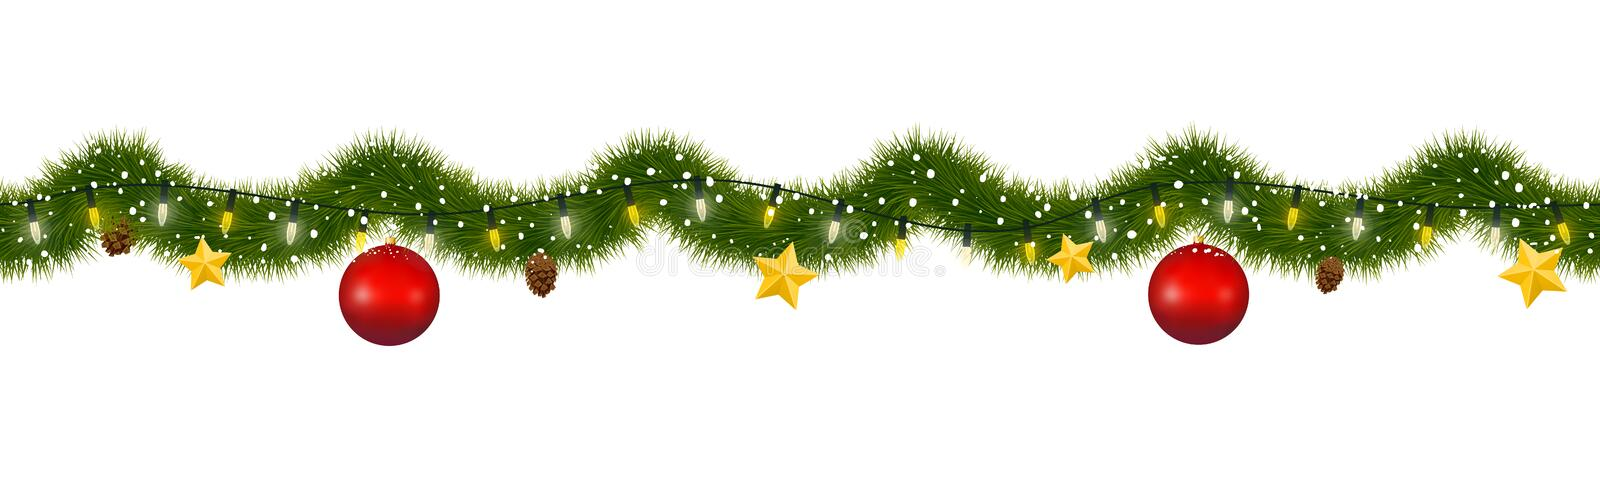 Christmas Garland Covered With Snow Stock Vector Illustration Of Vector Header 156890501